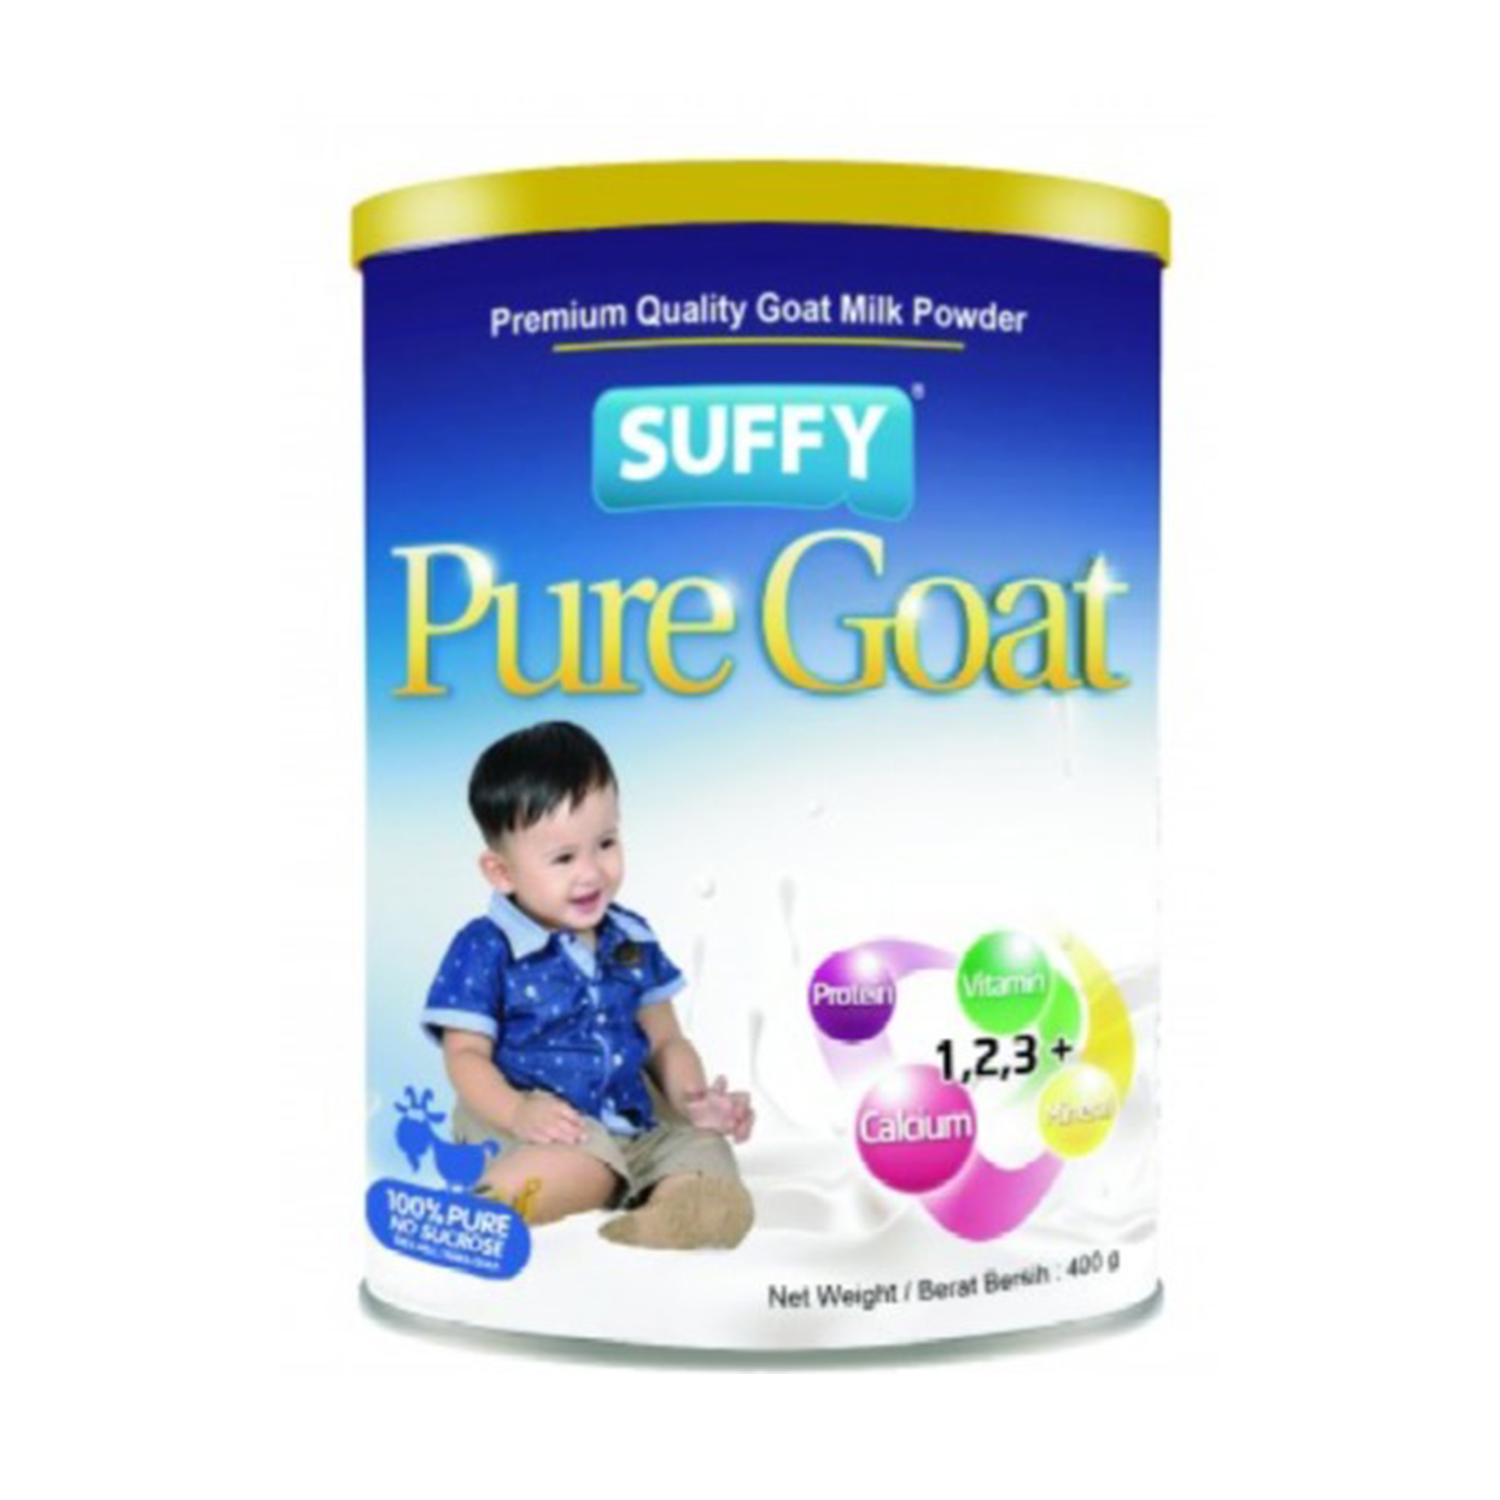 Suffy Pure Goat 1,2,3 400G